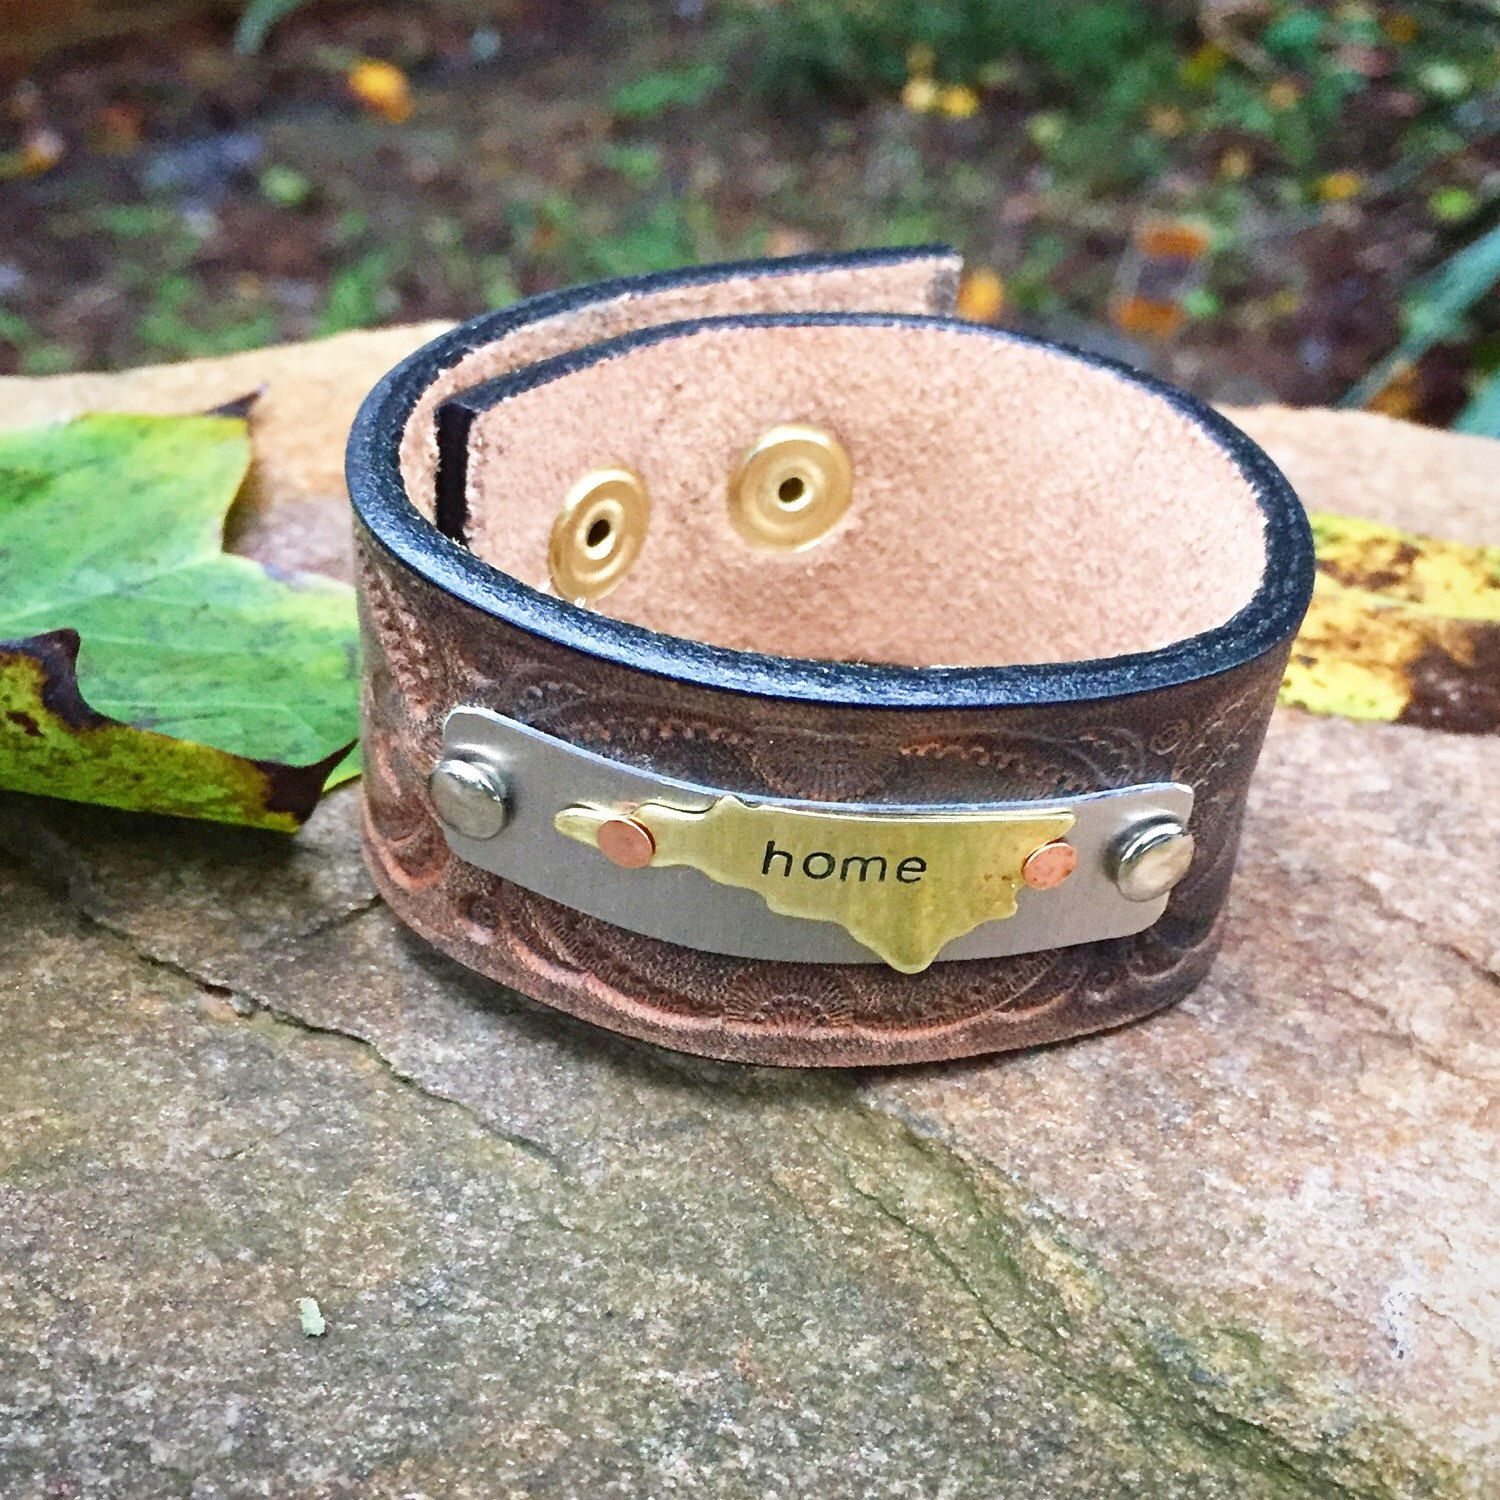 """Handcrafted stamped metal leather North Carolina """"home"""" cuff bracelet by WildArrowStudio on Etsy https://www.etsy.com/listing/250455461/handcrafted-stamped-metal-leather-north"""